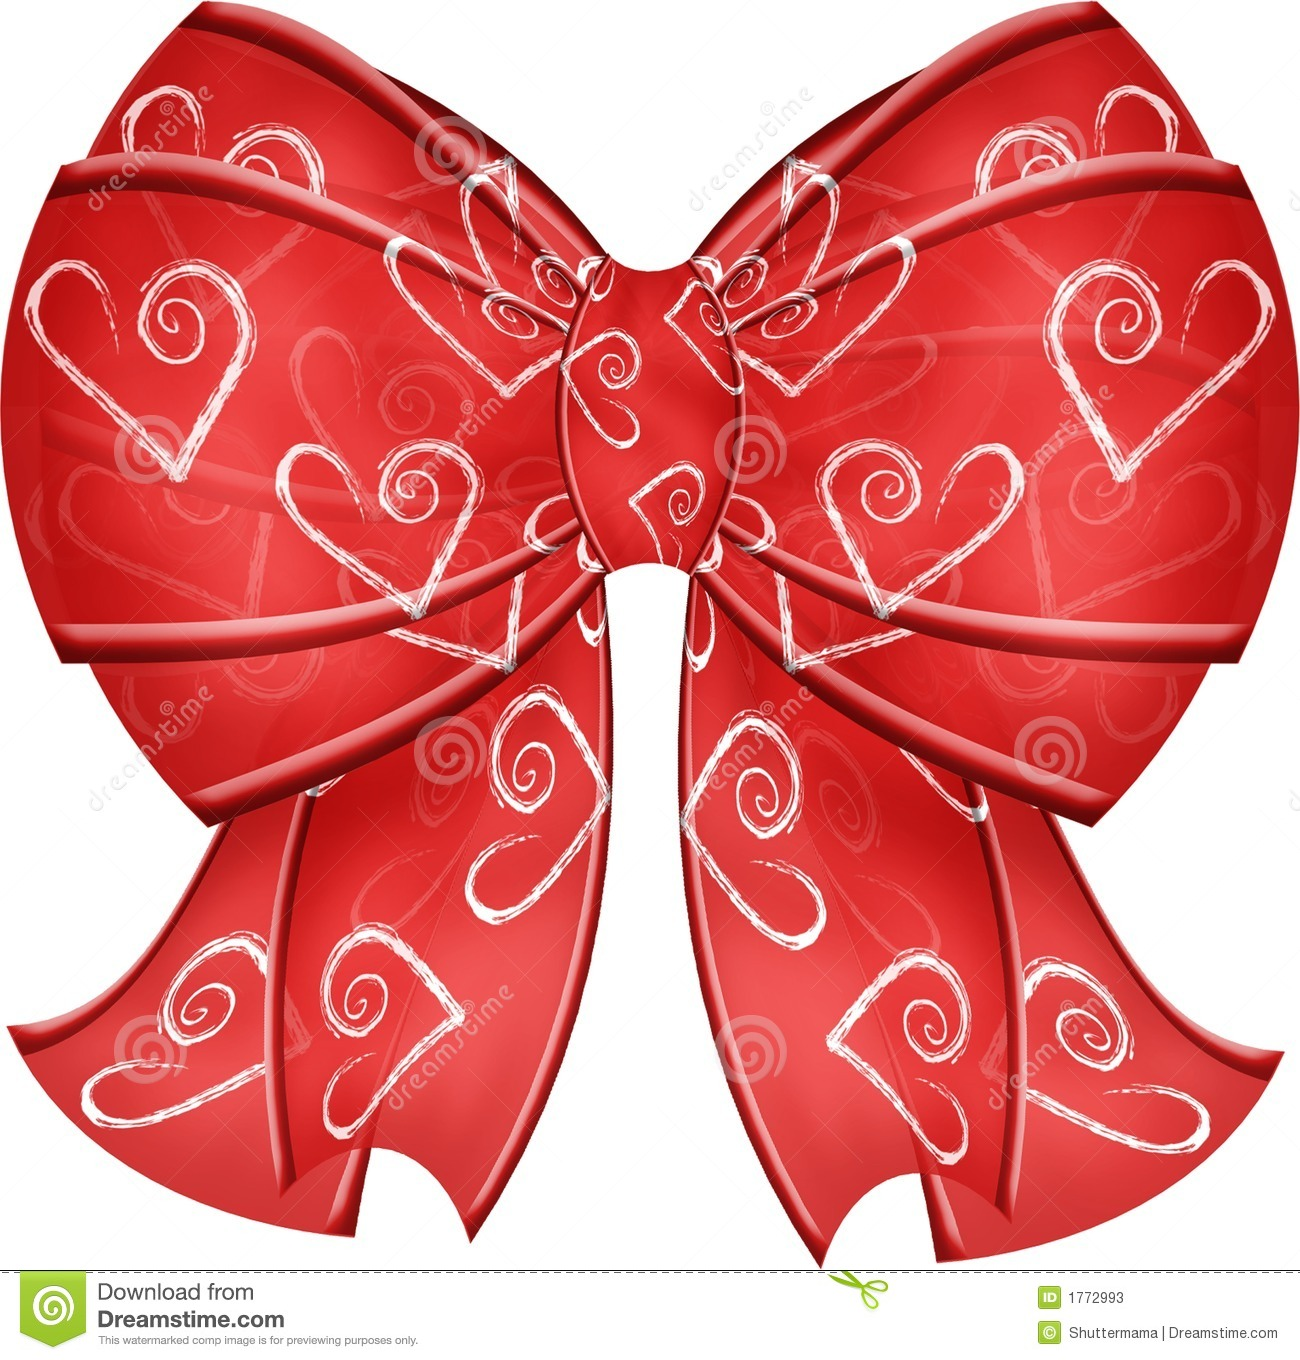 It is a picture of Enterprising Hearts With Bows